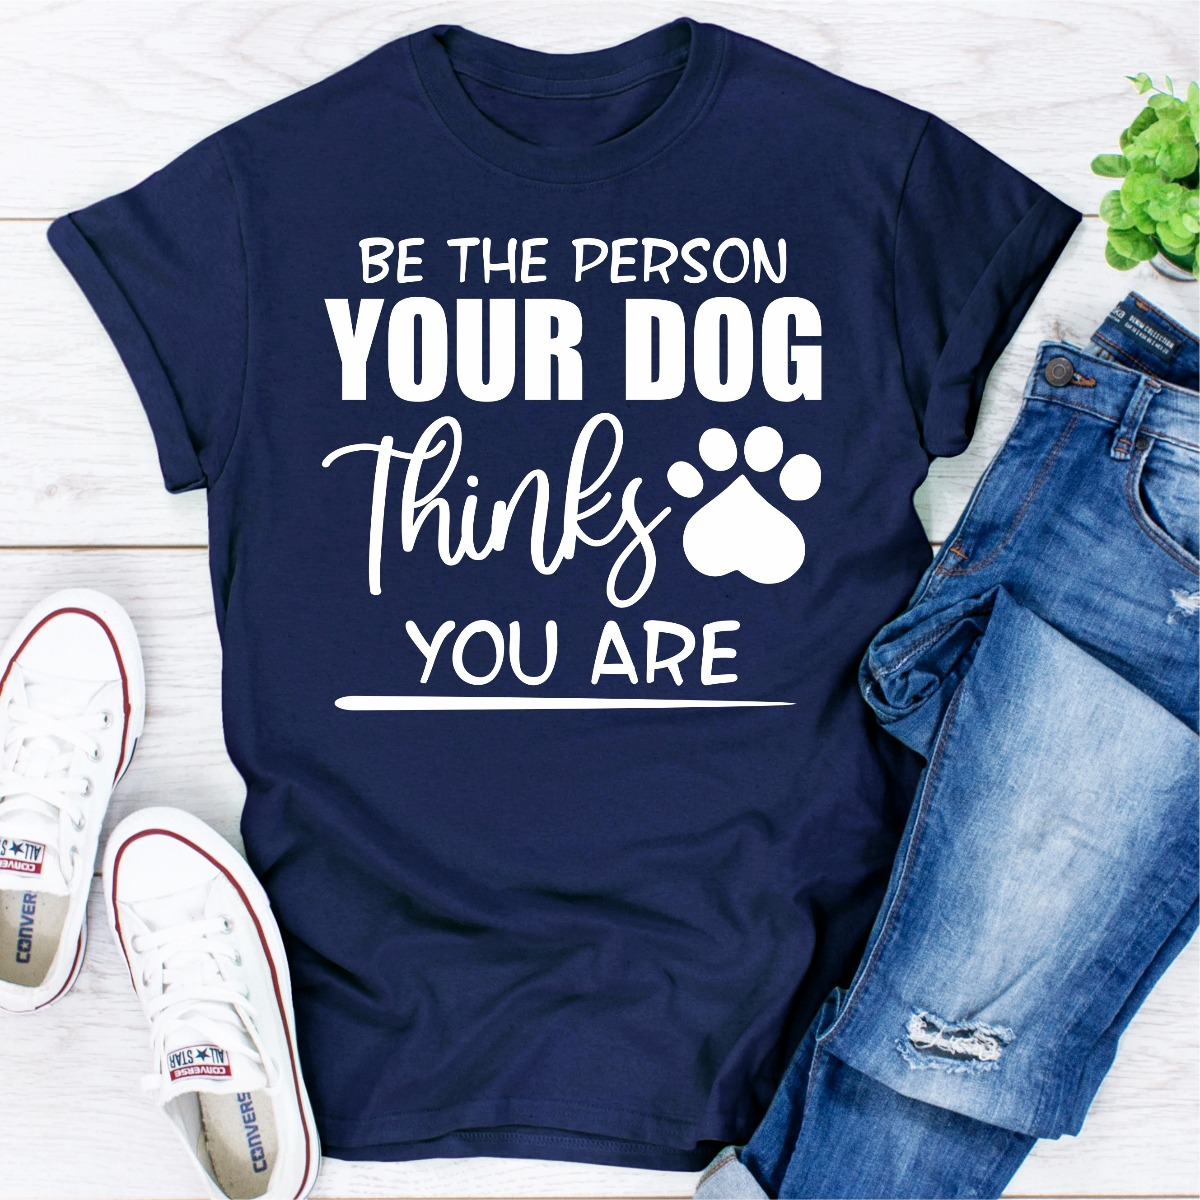 Be The Person Your Dog Thinks You Are (Navy / L)